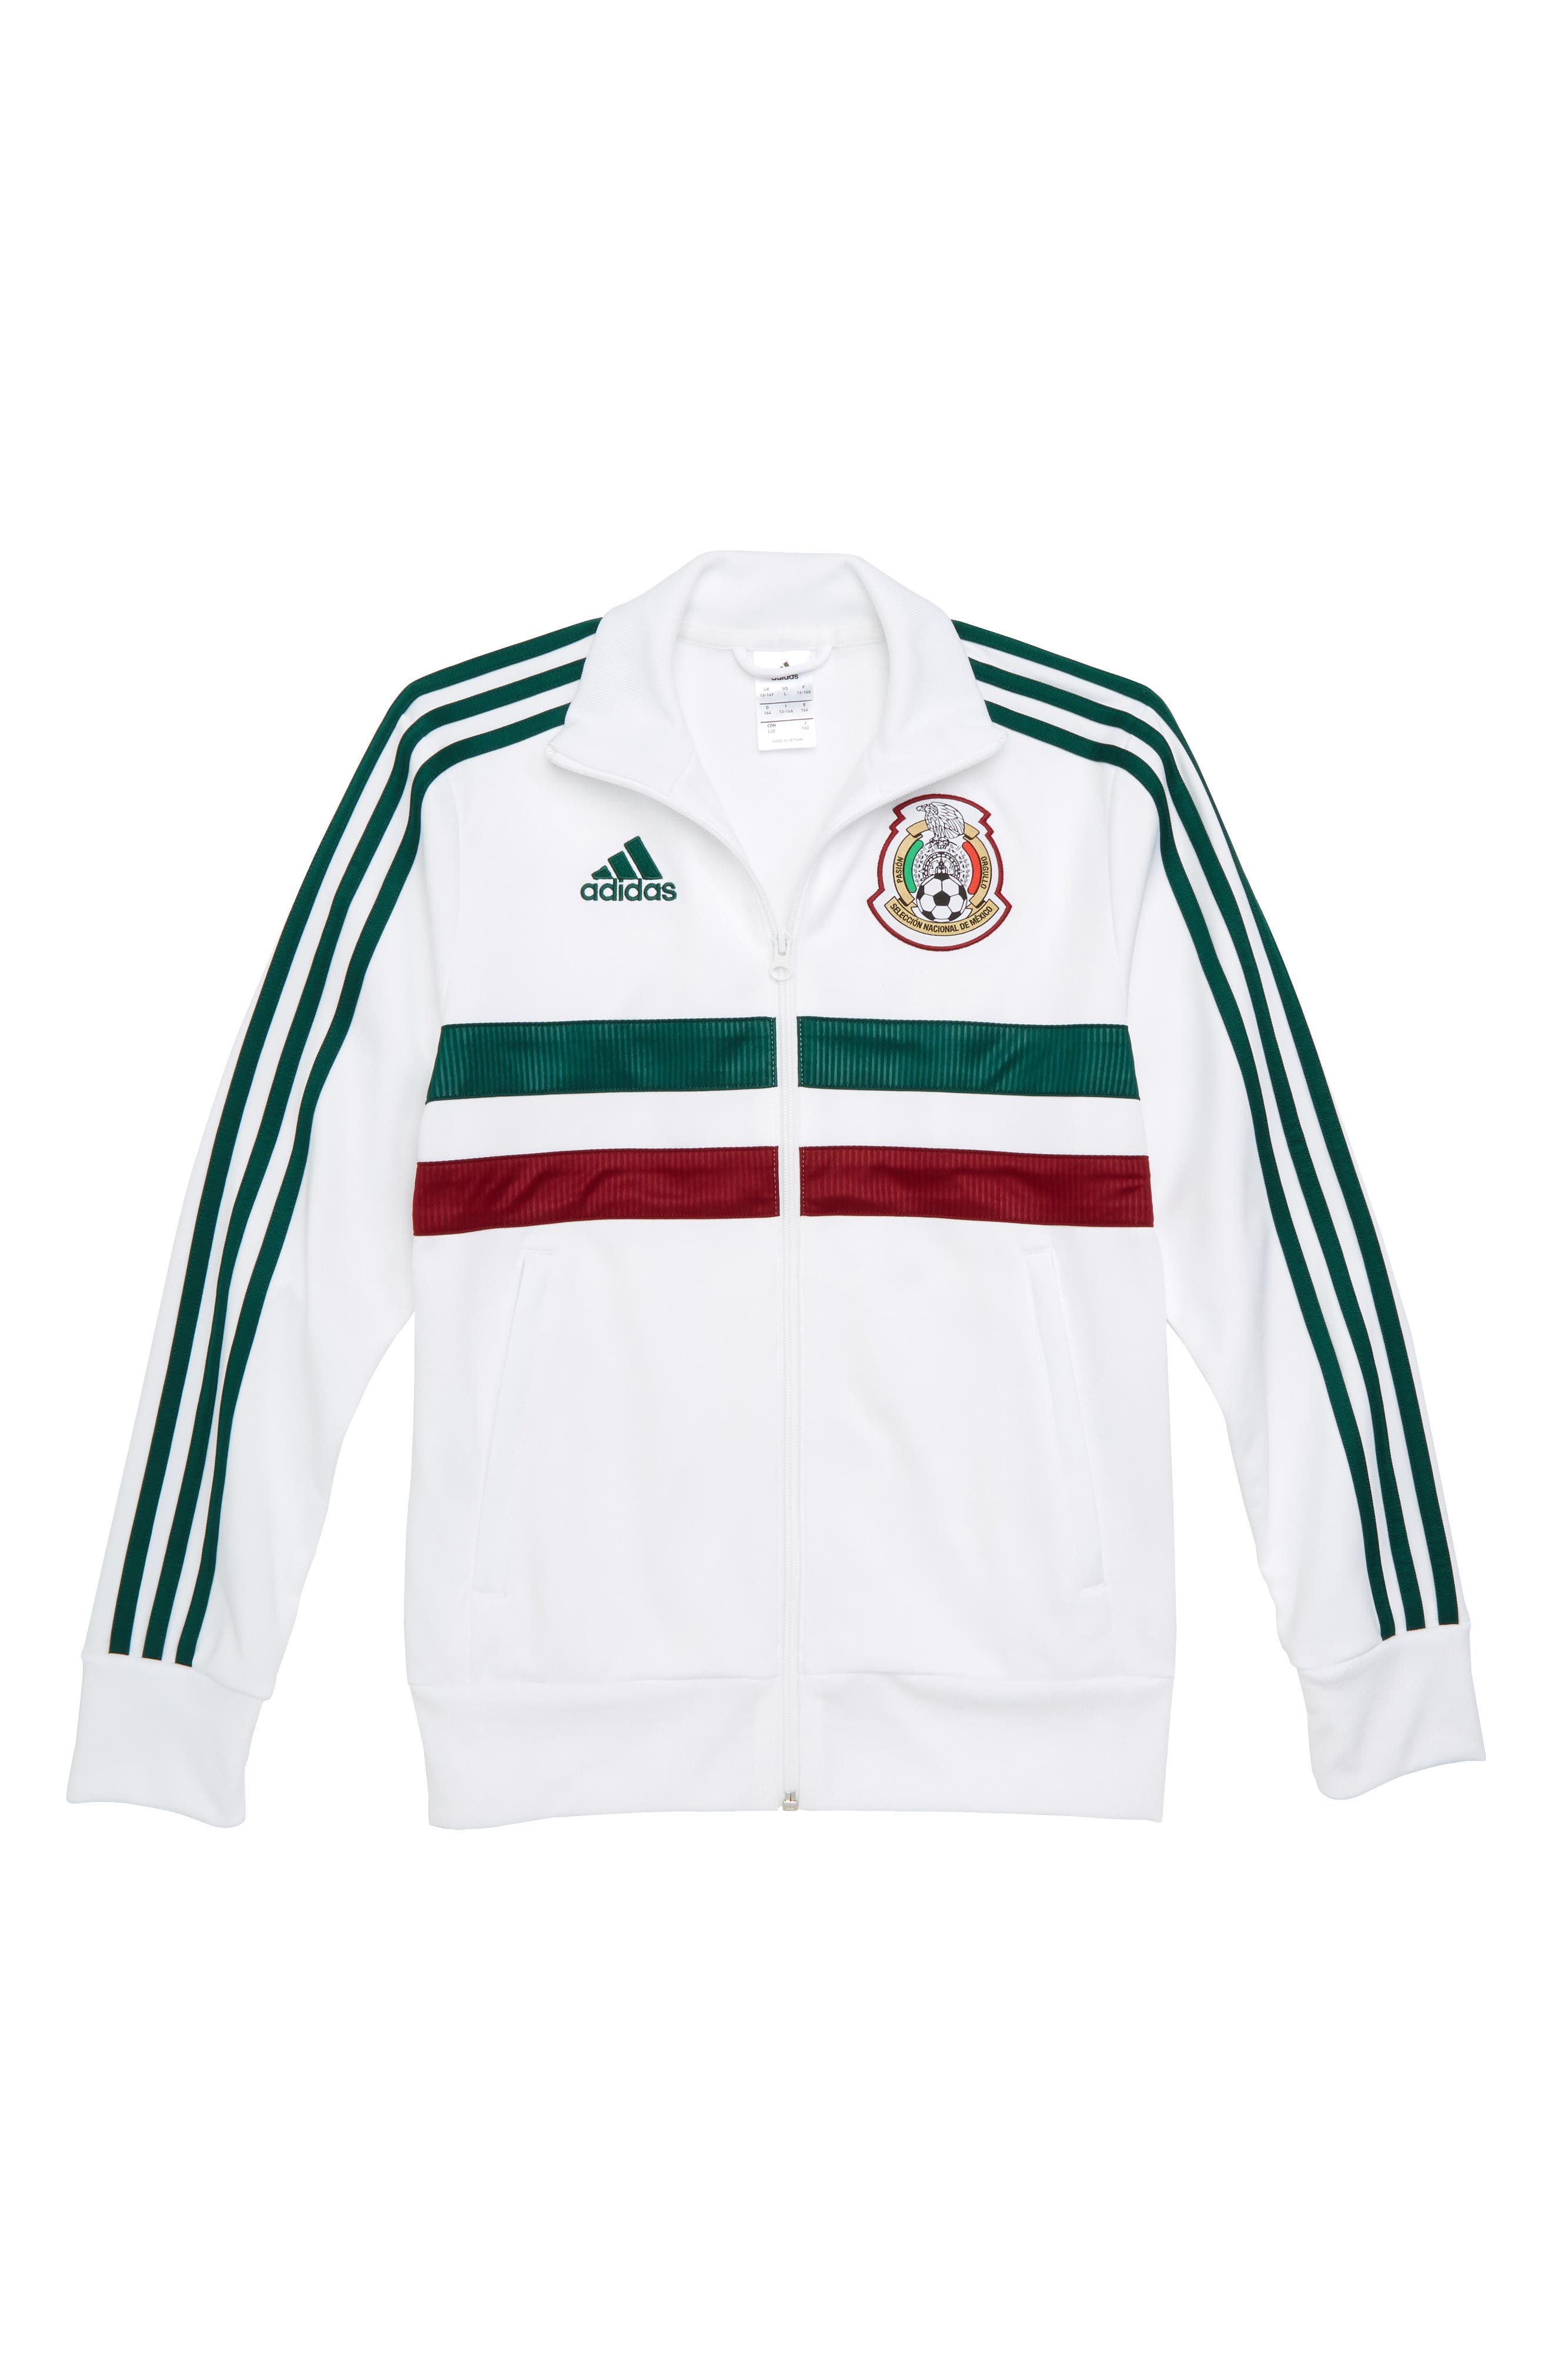 FIFA World Cup Soccer Mexico Jacket,                         Main,                         color, White/ Collegiate Green